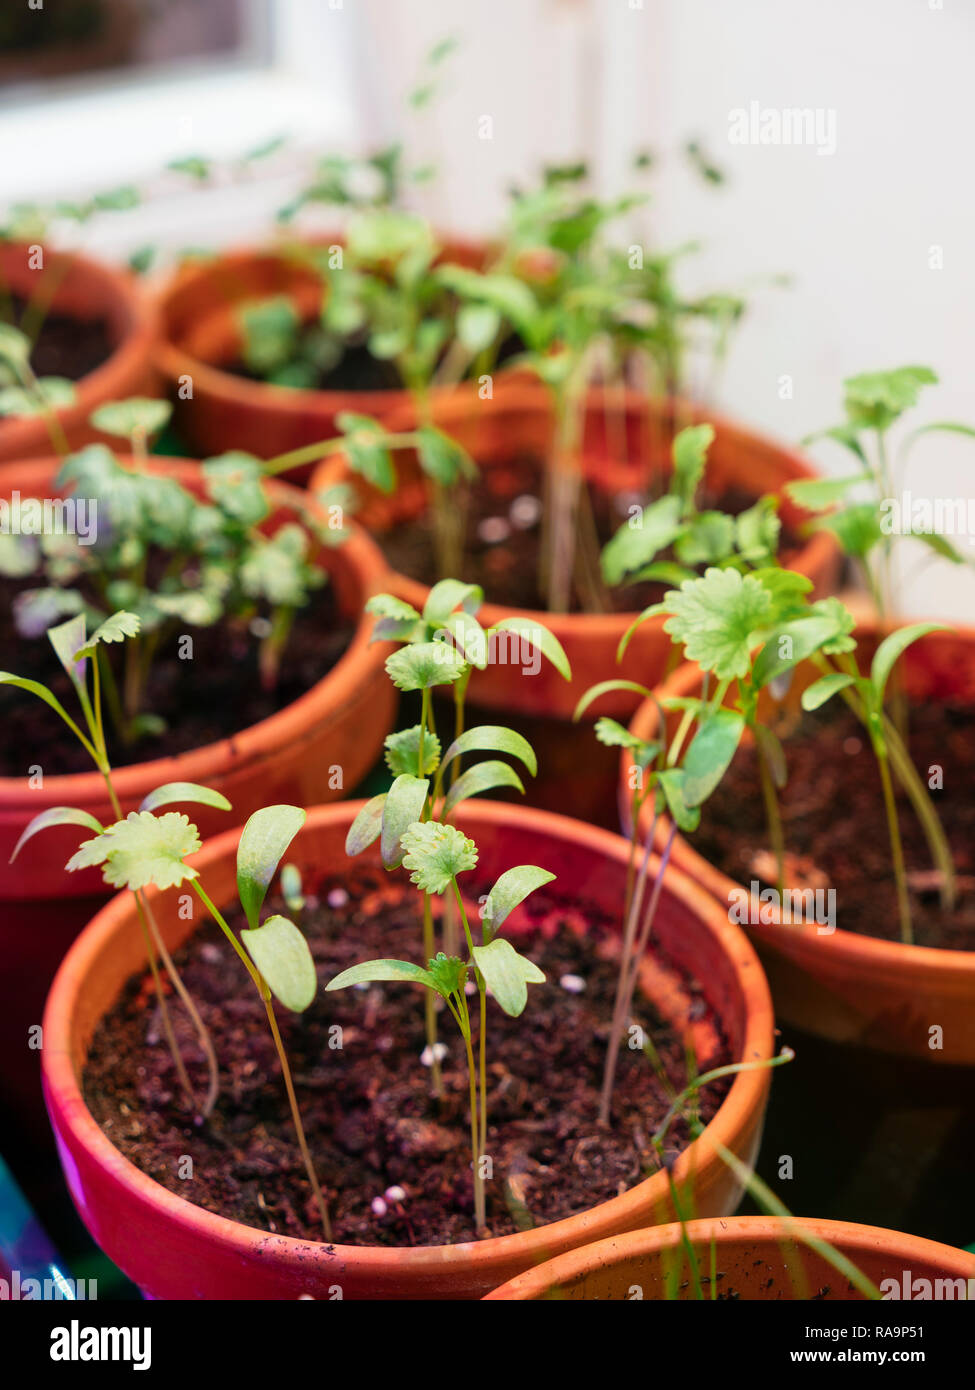 Corriander growing indoors under a grow light to provide fresh hebs in the winter. Stock Photo